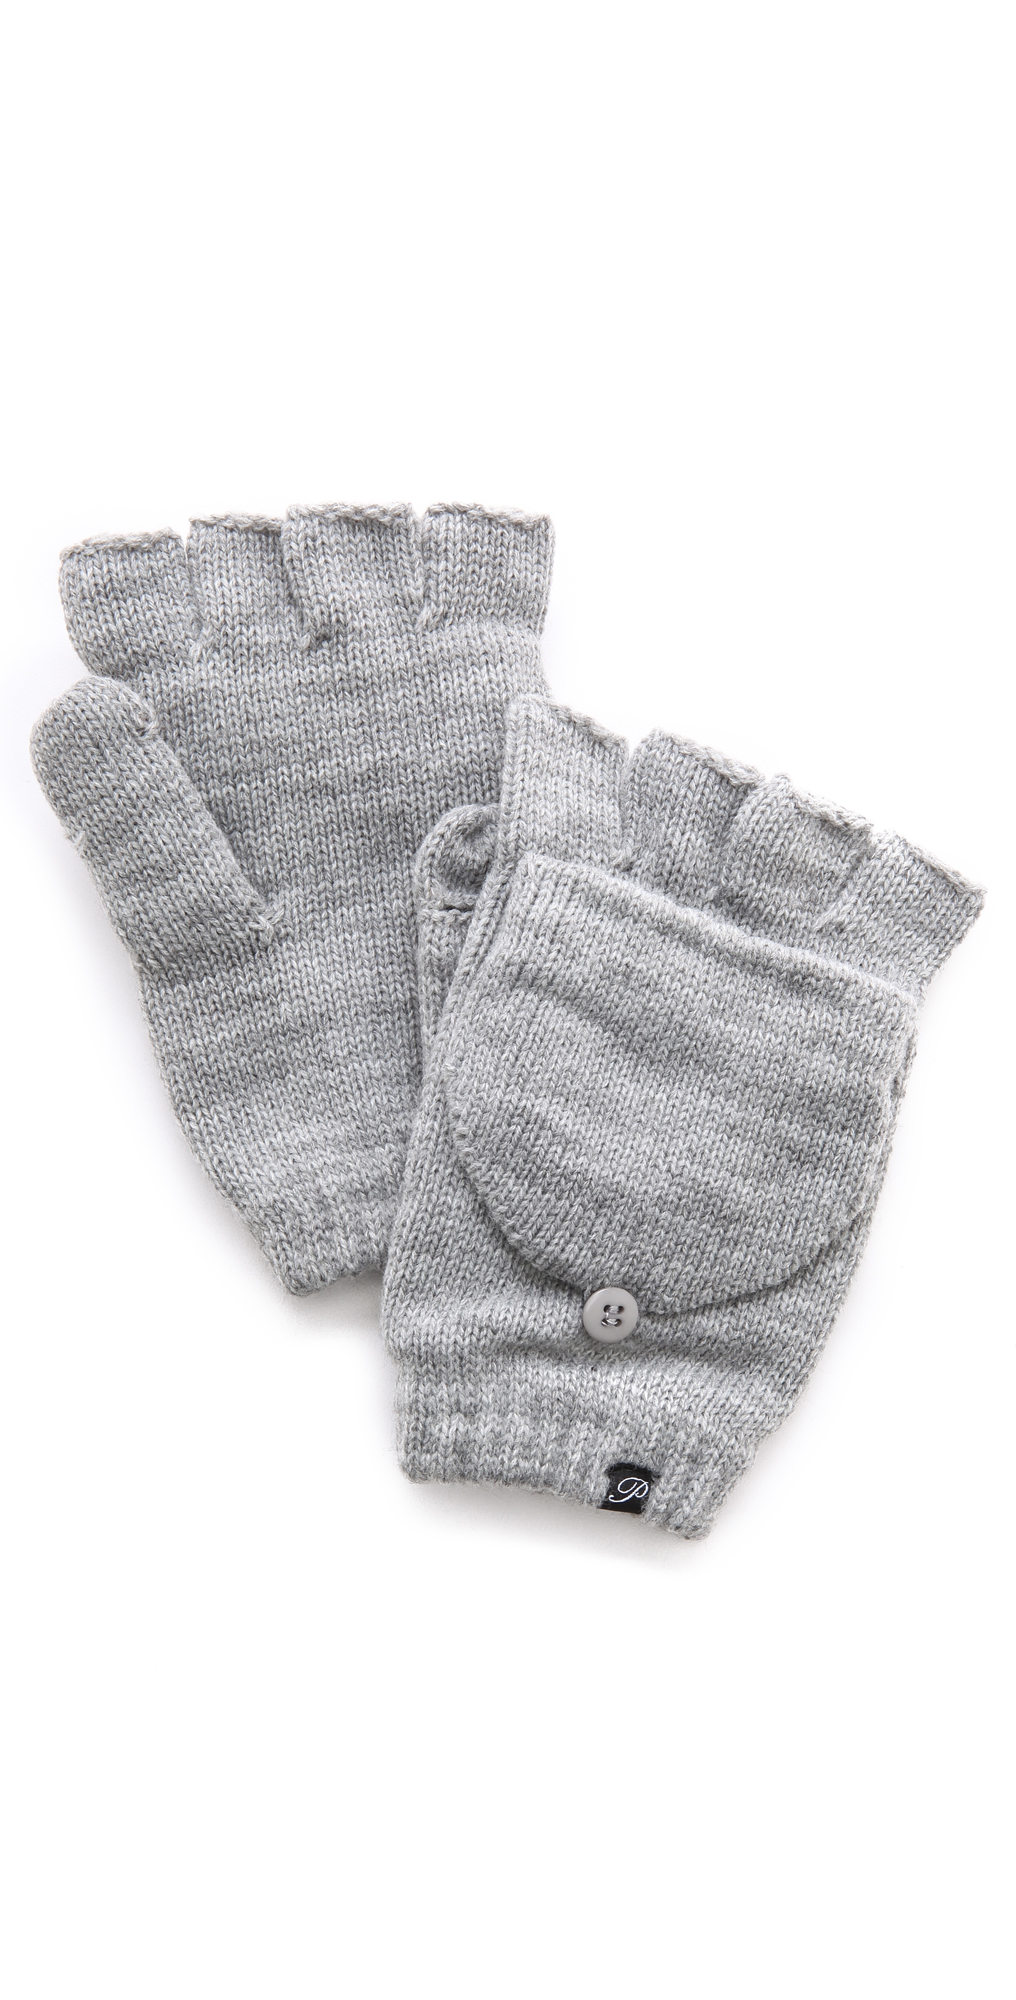 Fleece Lined Texting Mittens Plush